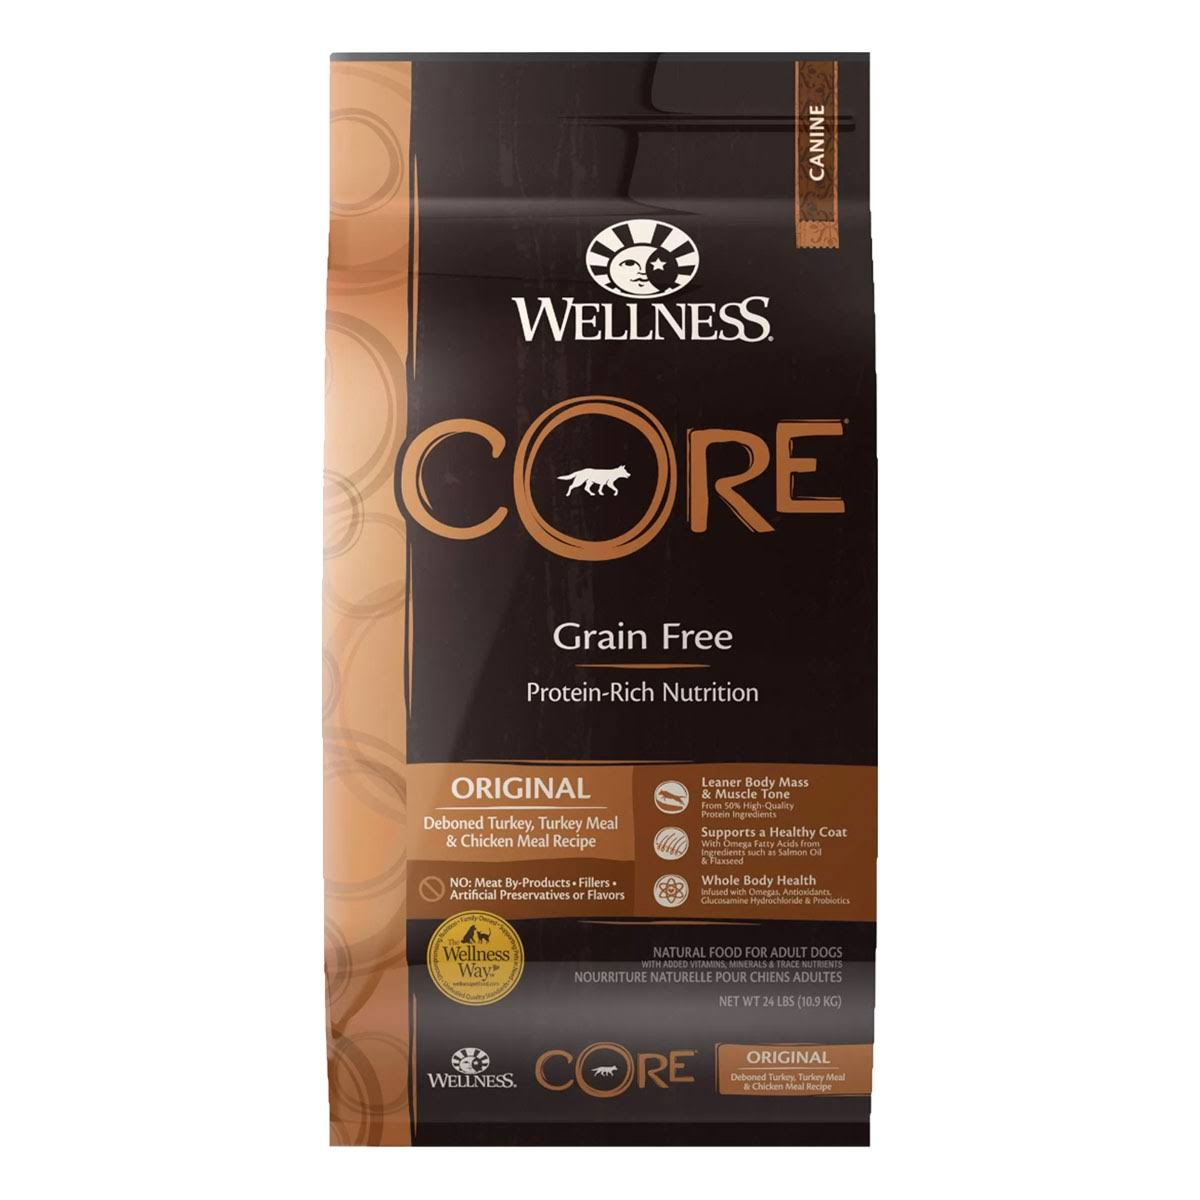 Wellness Core Original Formula Dog Food